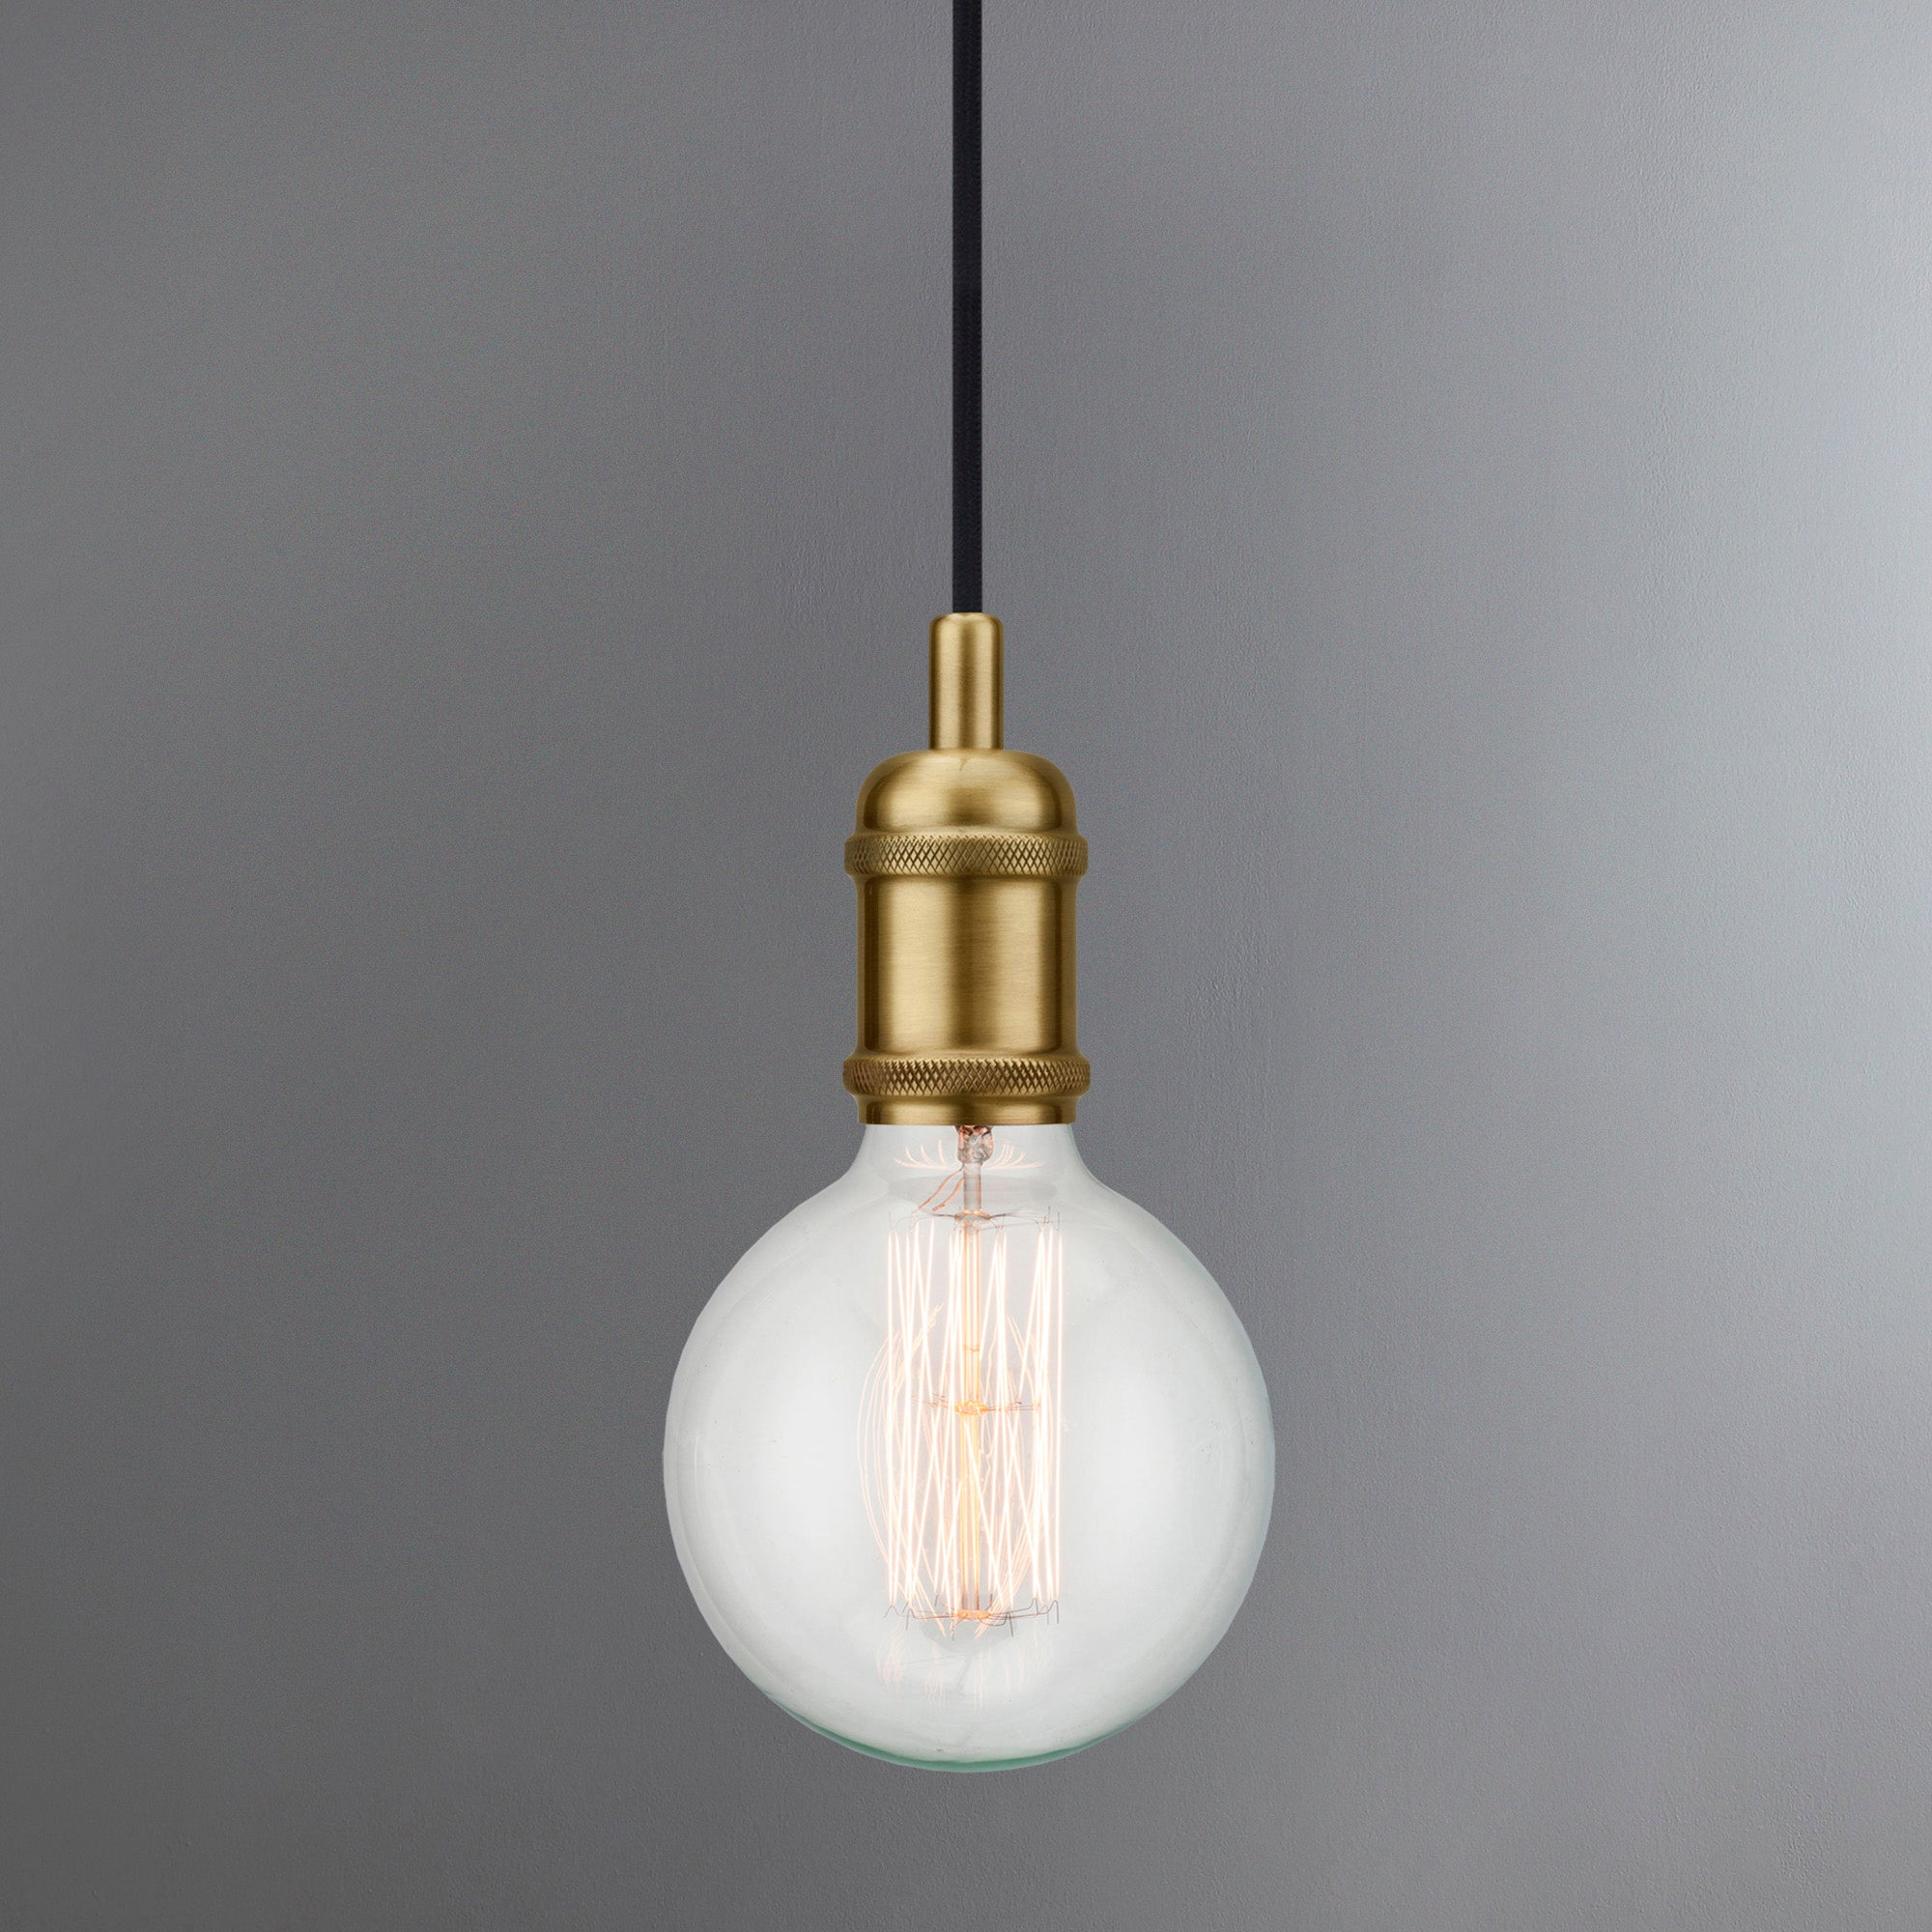 Image of Avra Brass Suspension Light Pendant Antique Brass